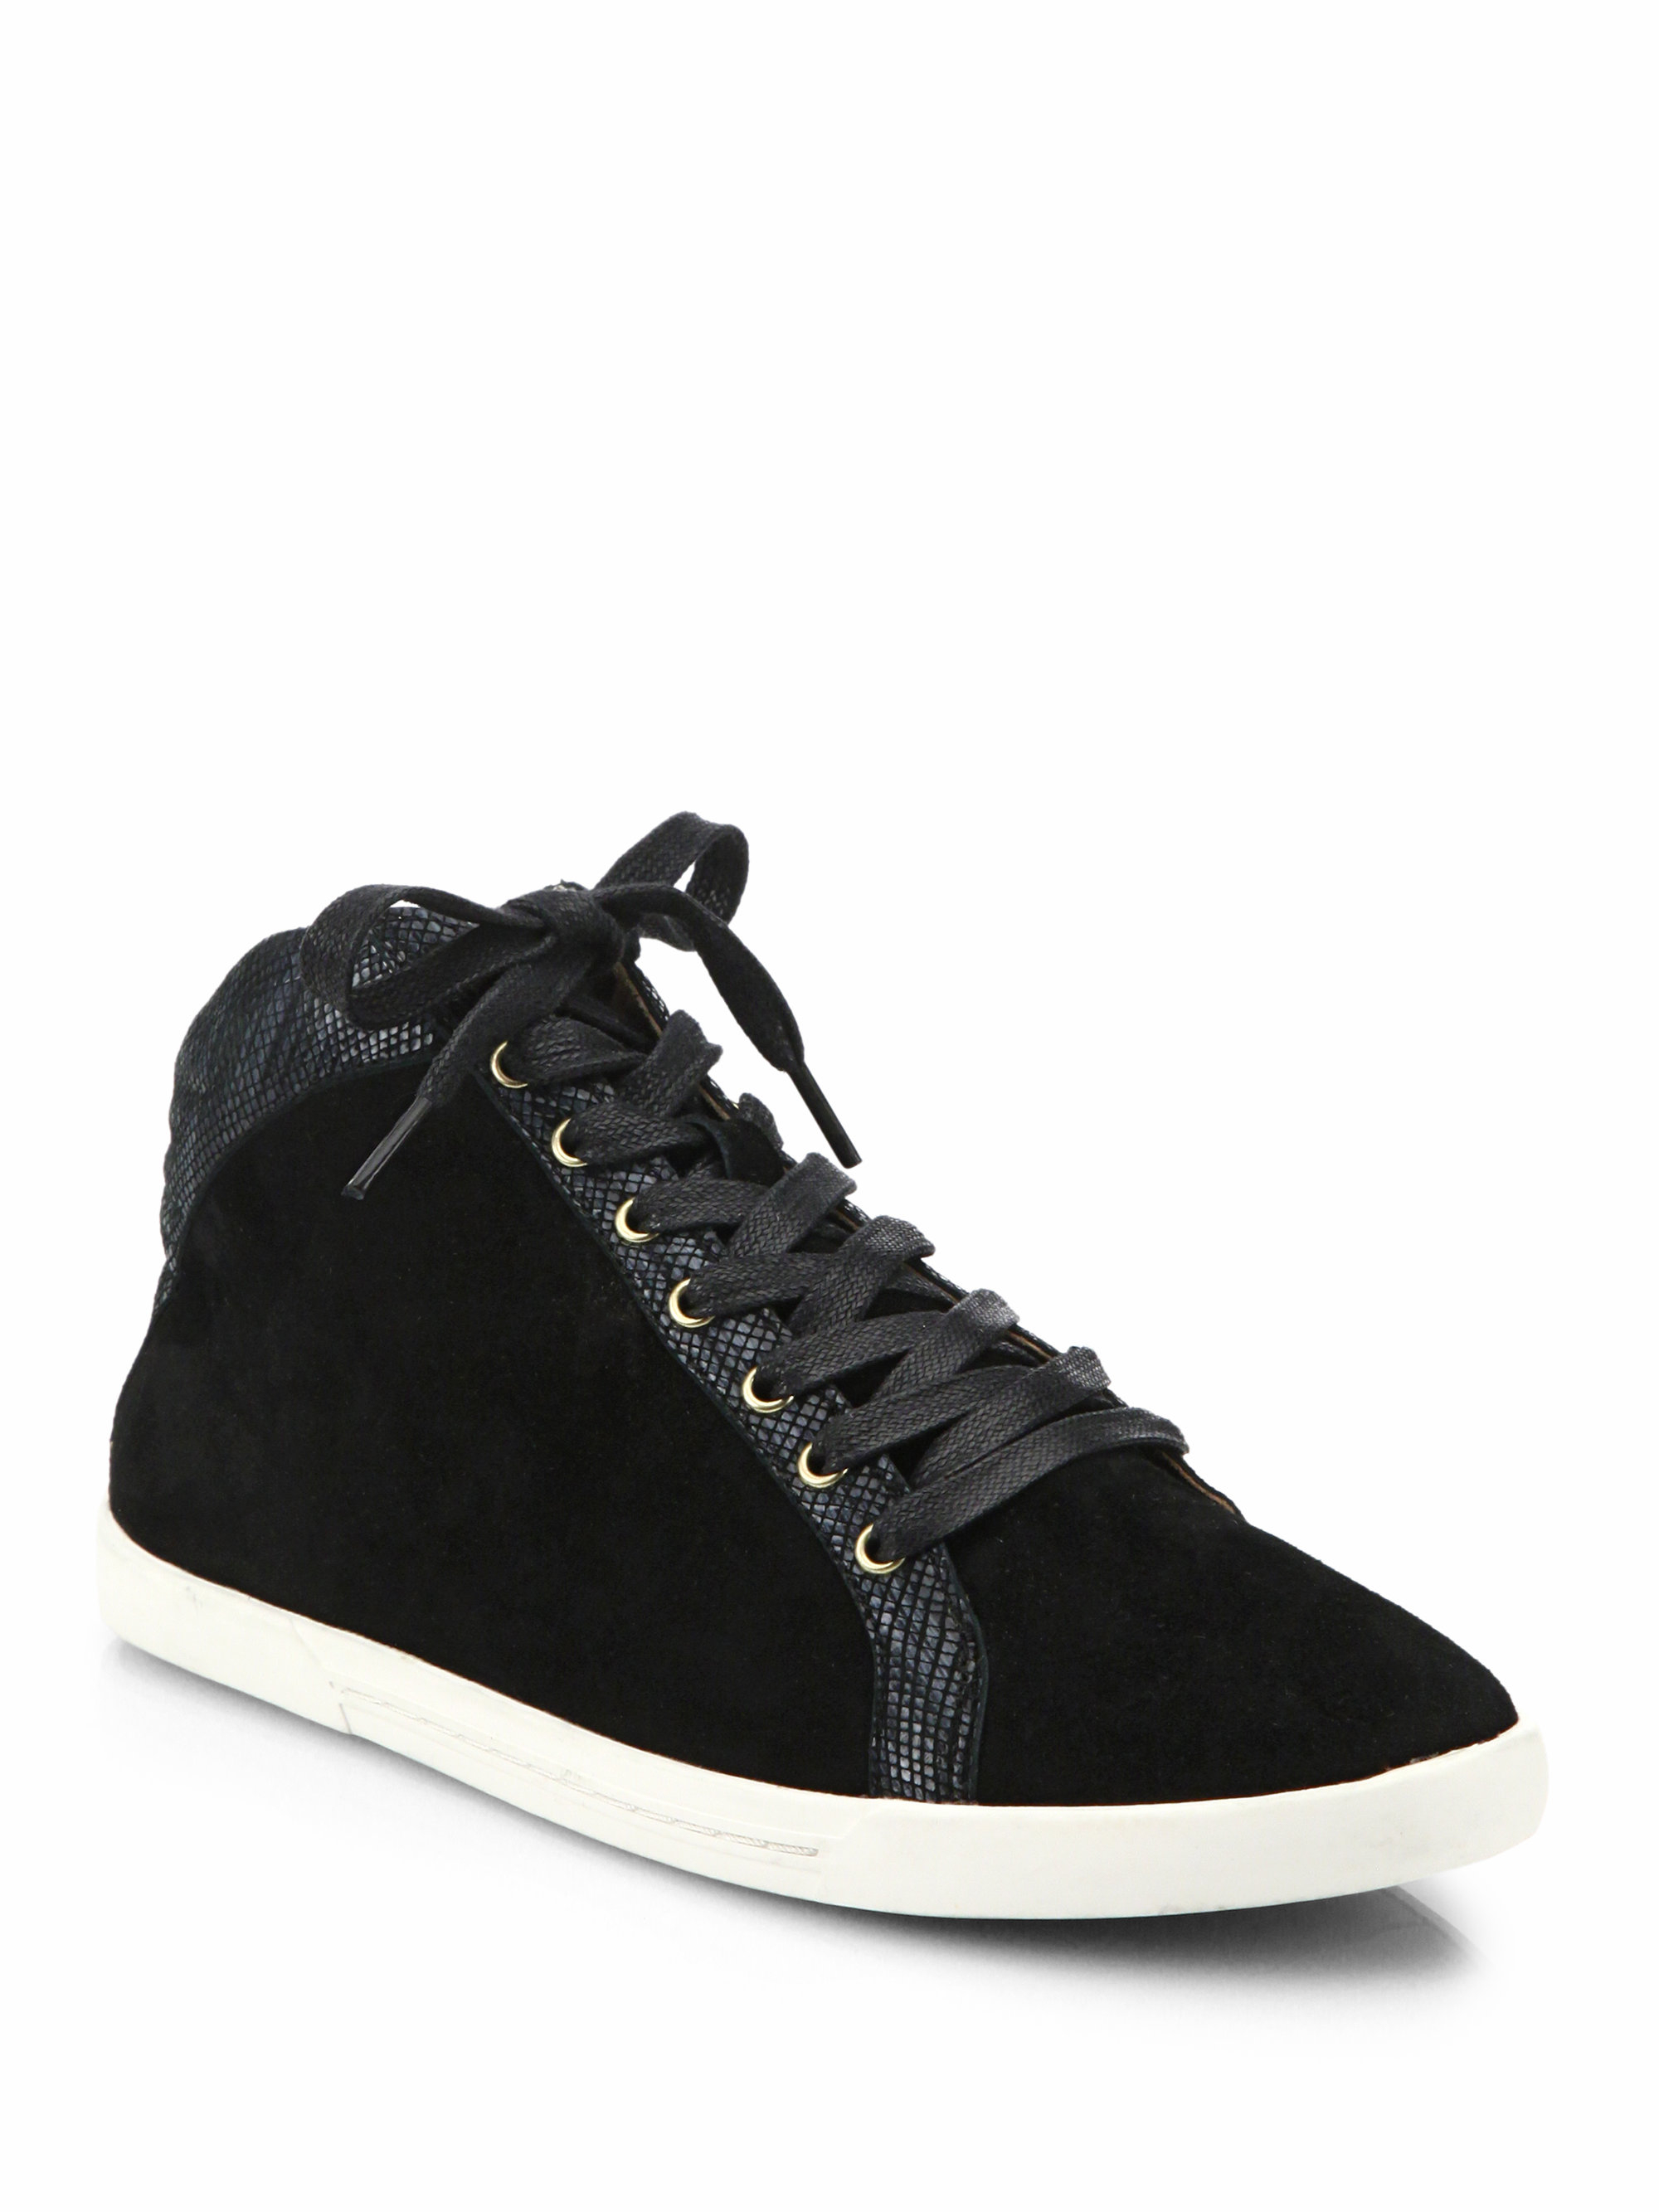 Black Suede High Tops Sale: Save Up to 40% Off! Shop pc-ios.tk's huge selection of Black Suede High Tops - Over 30 styles available. FREE Shipping & Exchanges, and a % price guarantee!